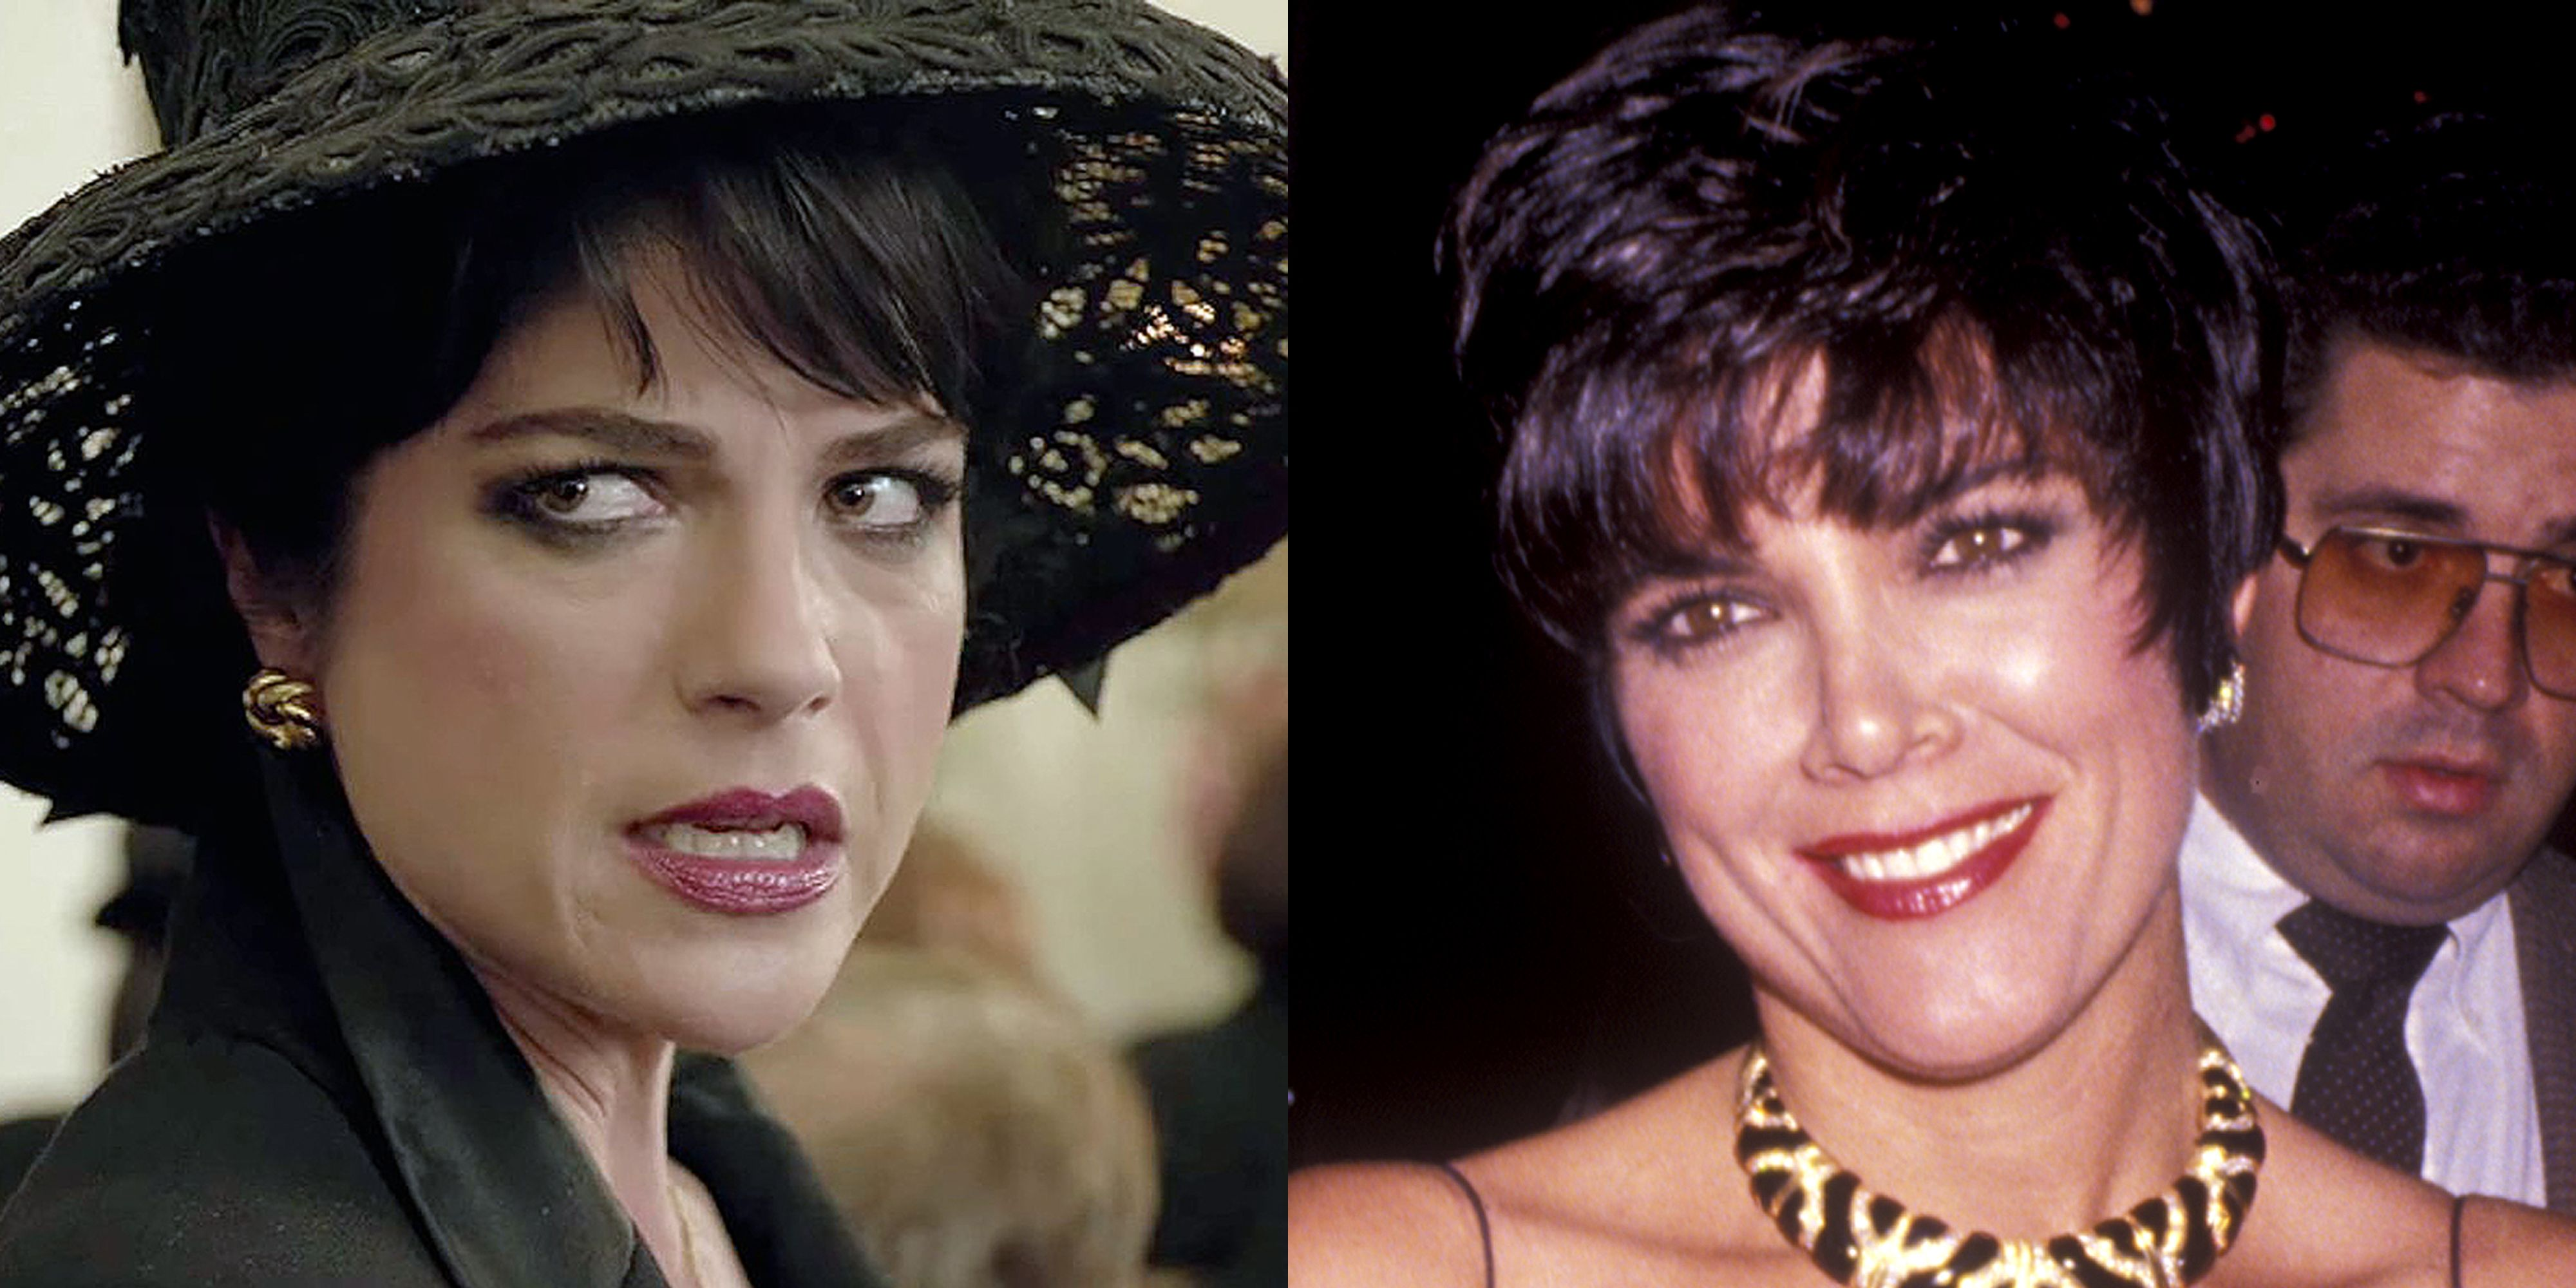 "<p>Blair <a href=""http://www.marieclaire.com/celebrity/news/a17284/selma-blair-kris-jenner-american-crime-trailer/"" target=""_blank"" data-tracking-id=""recirc-text-link"">played Jenner</a> as her pre-<em data-redactor-tag=""em"">Keeping Up with the Kardashians </em>self in <em data-redactor-tag=""em"">The People v. O. J. Simpson: American Crime Story</em>. <span class=""redactor-invisible-space"" data-verified=""redactor"" data-redactor-tag=""span"" data-redactor-class=""redactor-invisible-space""></span></p>"